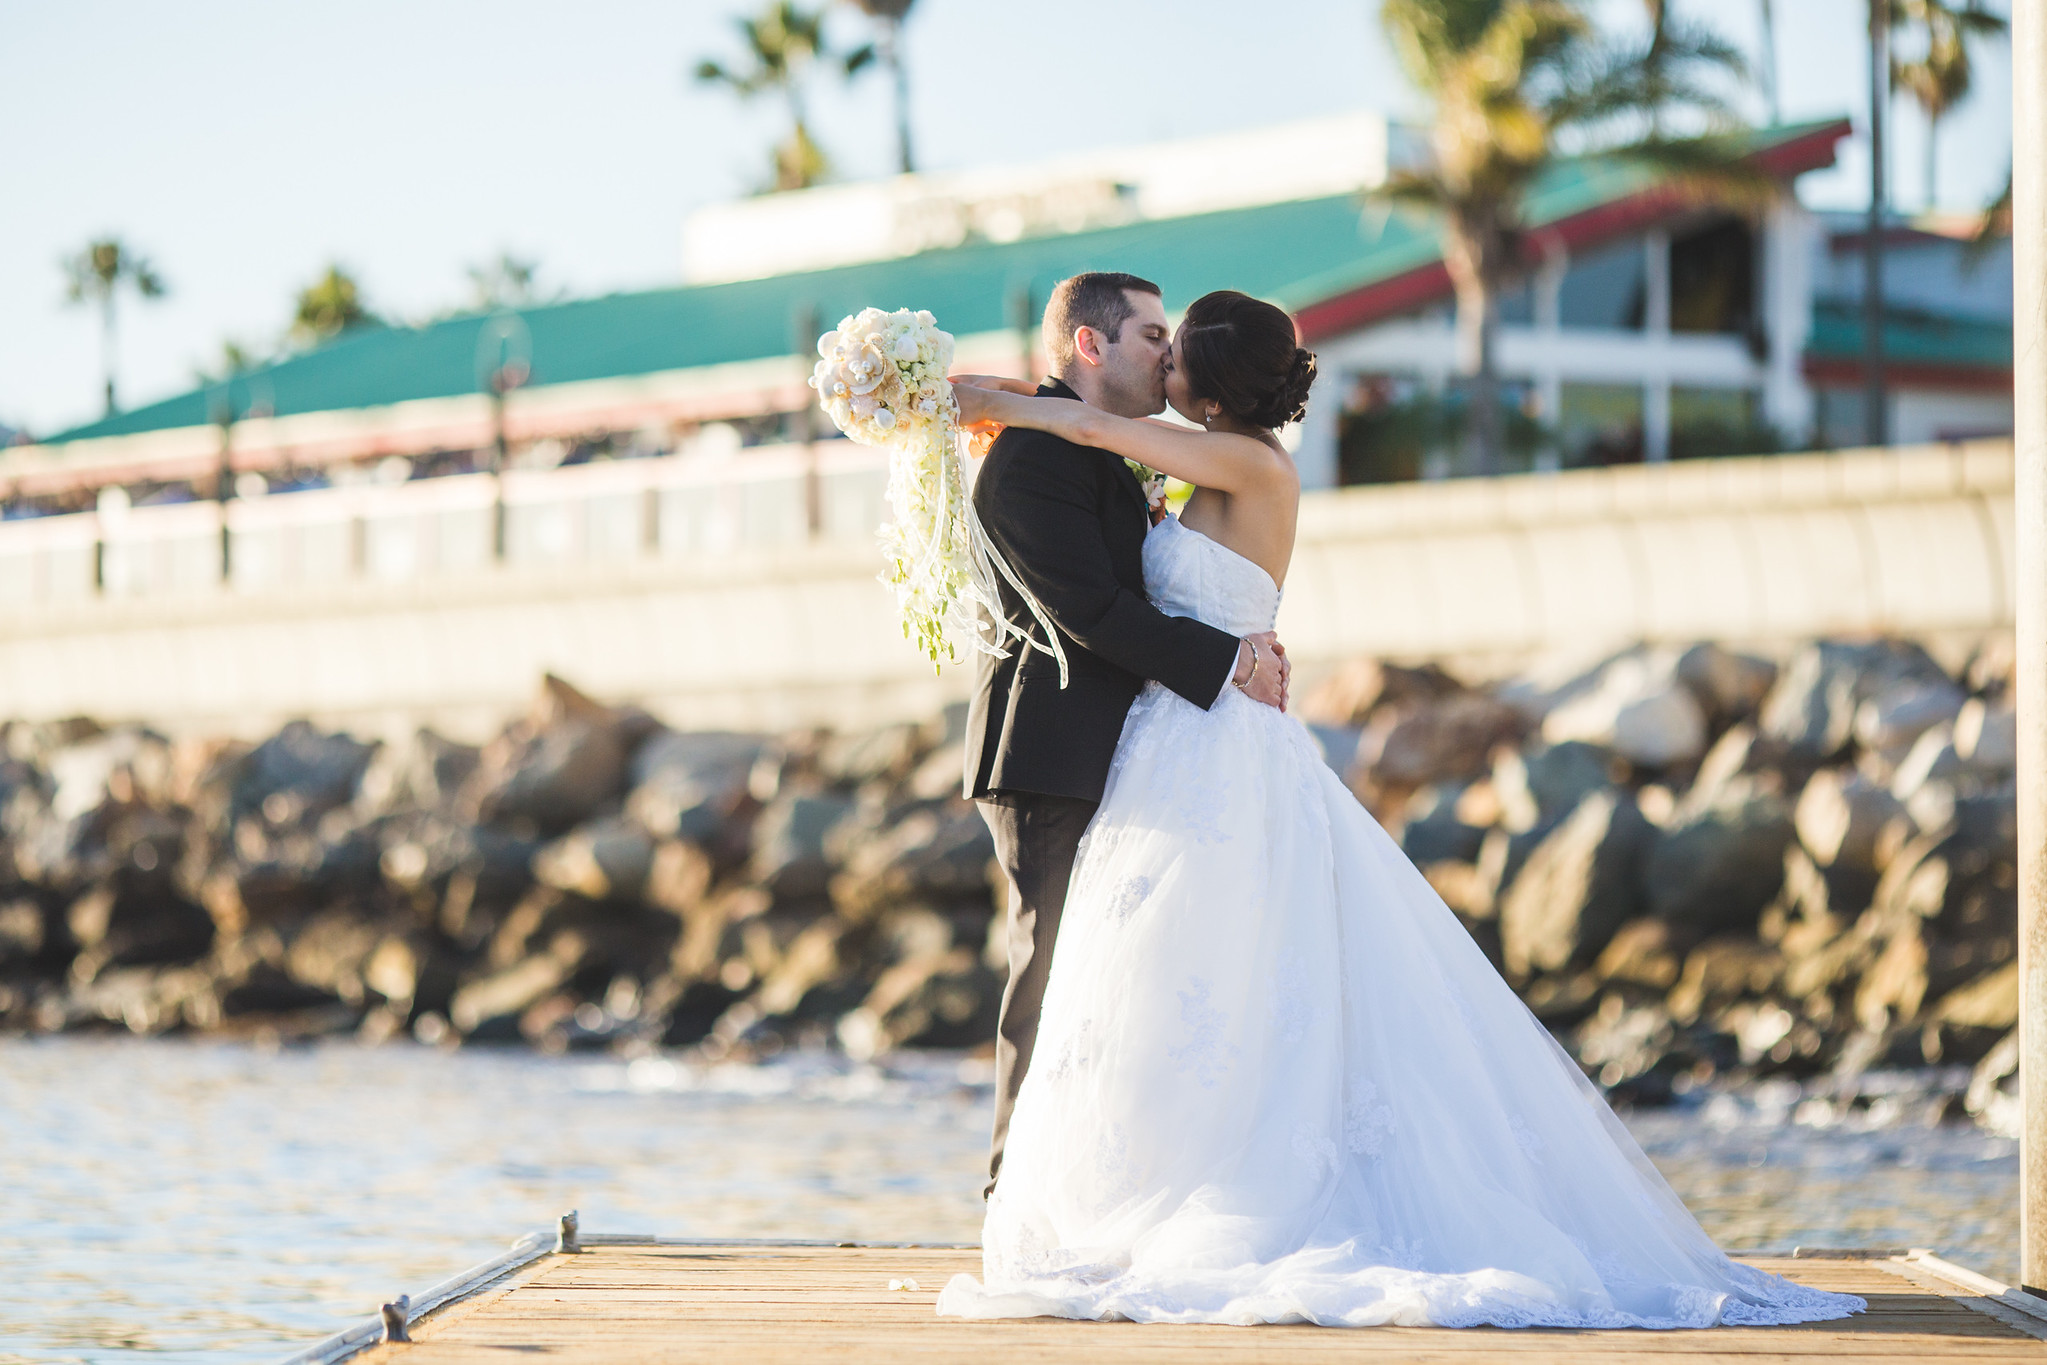 Wedding - Portofino Hotel & Marina | Wedding Photography and Wedding Videography